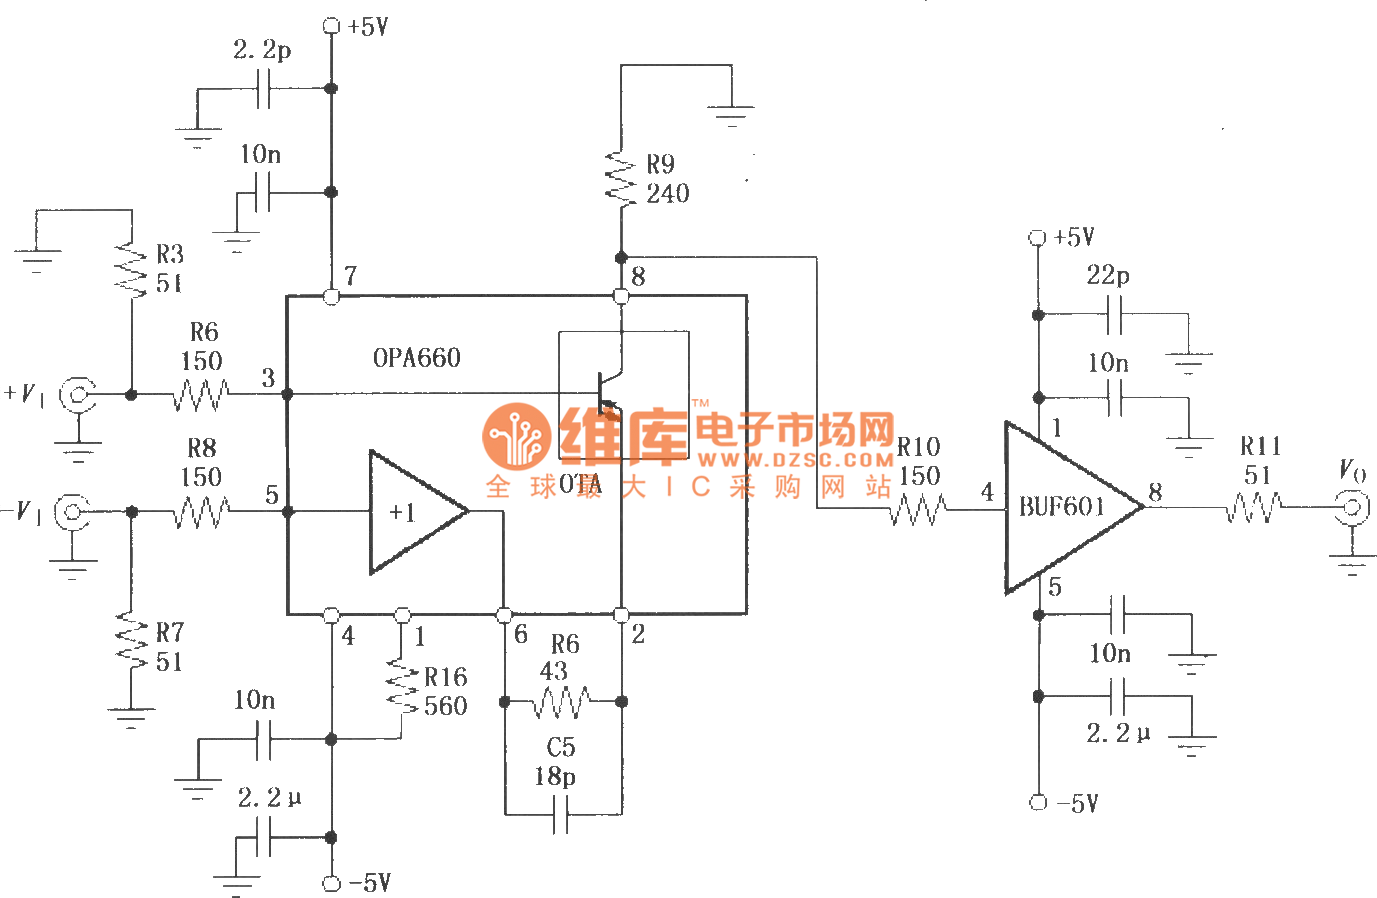 400mhz differential amplifier circuit with broadband transconductance operational amplifier and